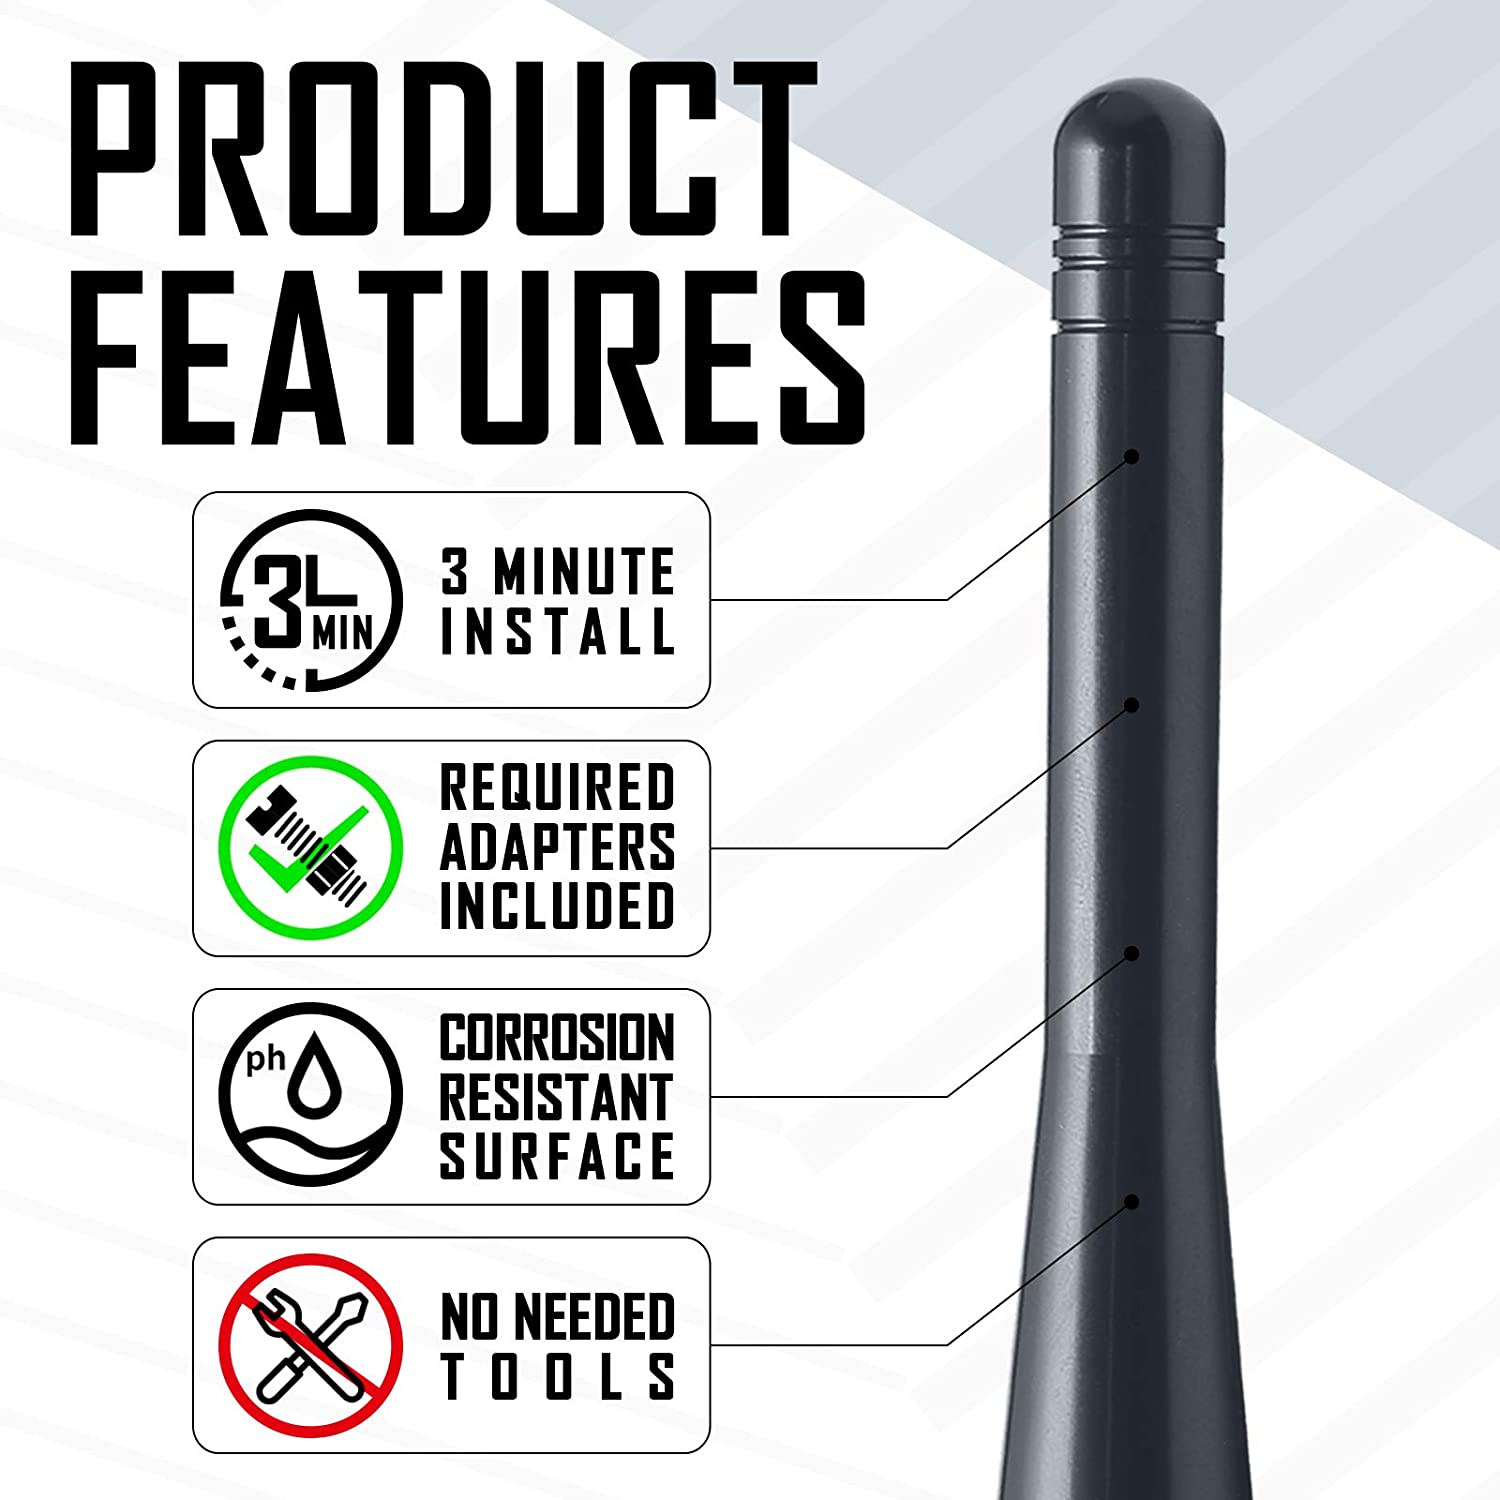 2 Inches Optimized AM//FM Reception with Tough Material Carbon/ Black Elitezip Replacement Antenna for Ford Raptor 2010-2018